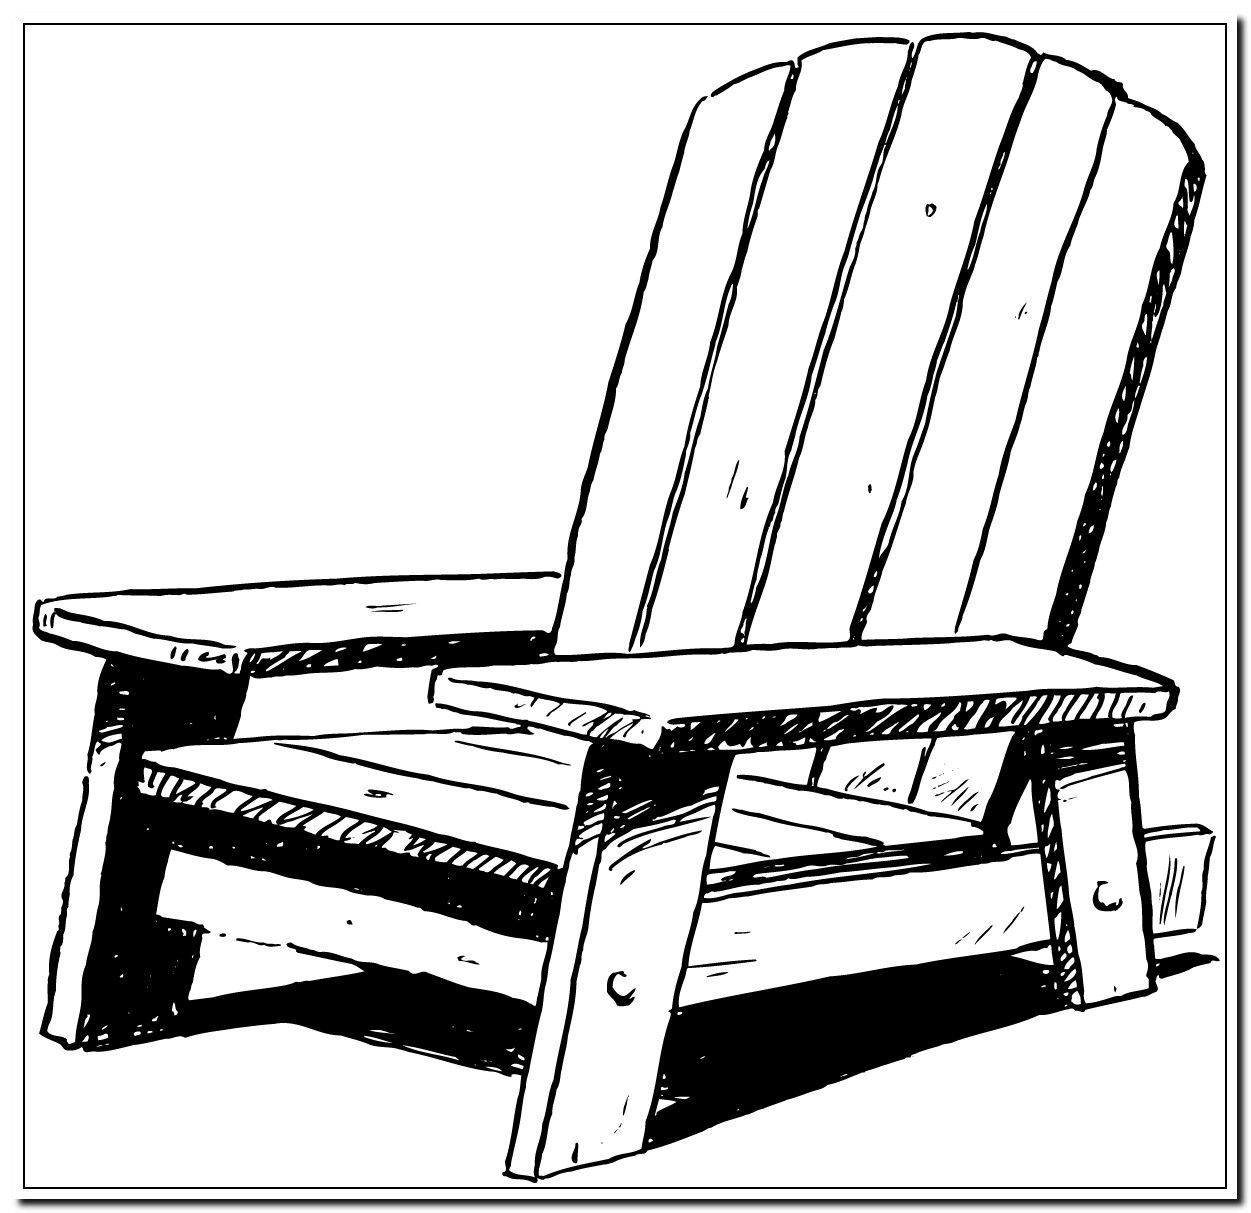 106 Reference Of Lounge Chair Black And White Clipart In 2020 Chair Design Wooden Modern Lounge Chairs Slipcovers For Chairs